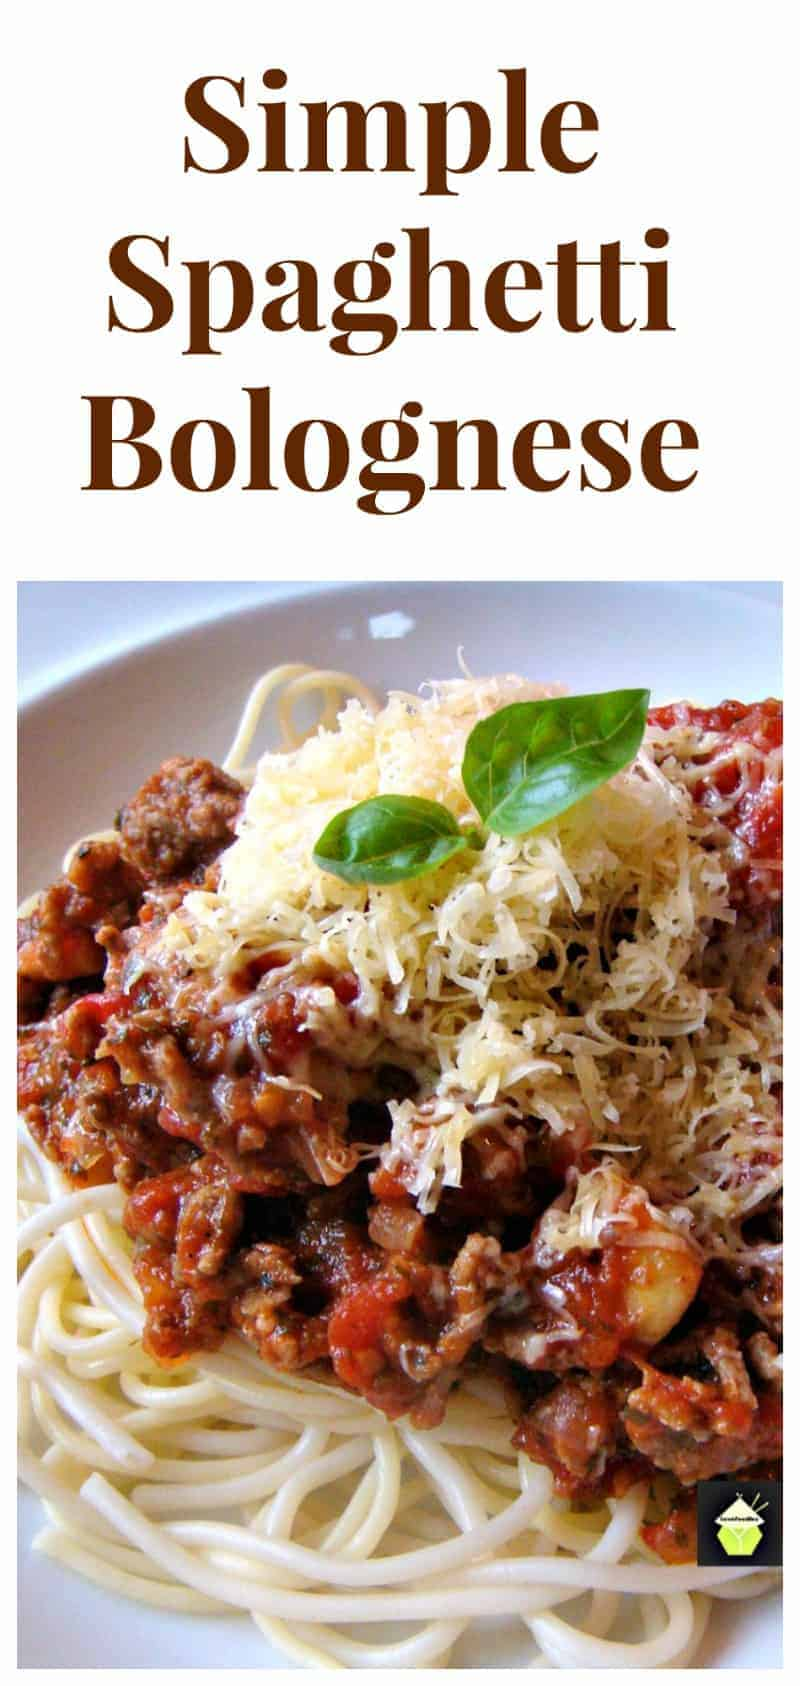 Simple Spaghetti Bolognese, an easy dinner using fresh ingredients and full of flavor, with a homemade tomato sauce